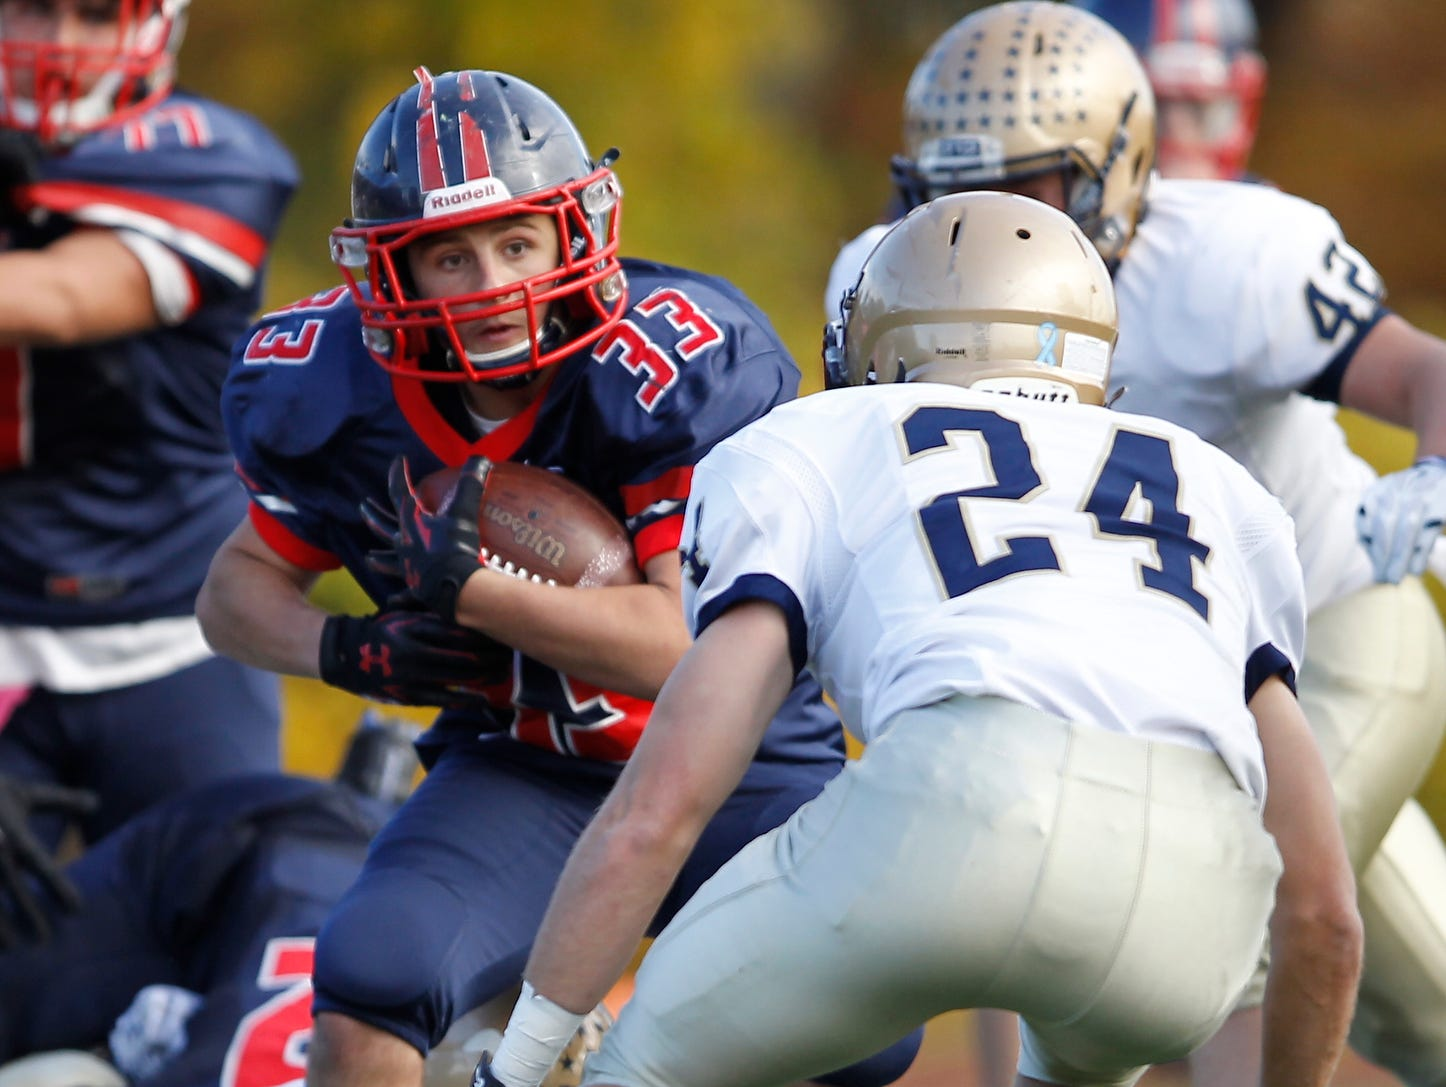 Eastchester's John Guido (33) finds a hole during their 19-27 loss to Our Lady of Lourdes High School in the class A semi-final football game in Eastchester on Saturday, Oct. 31, 2015.